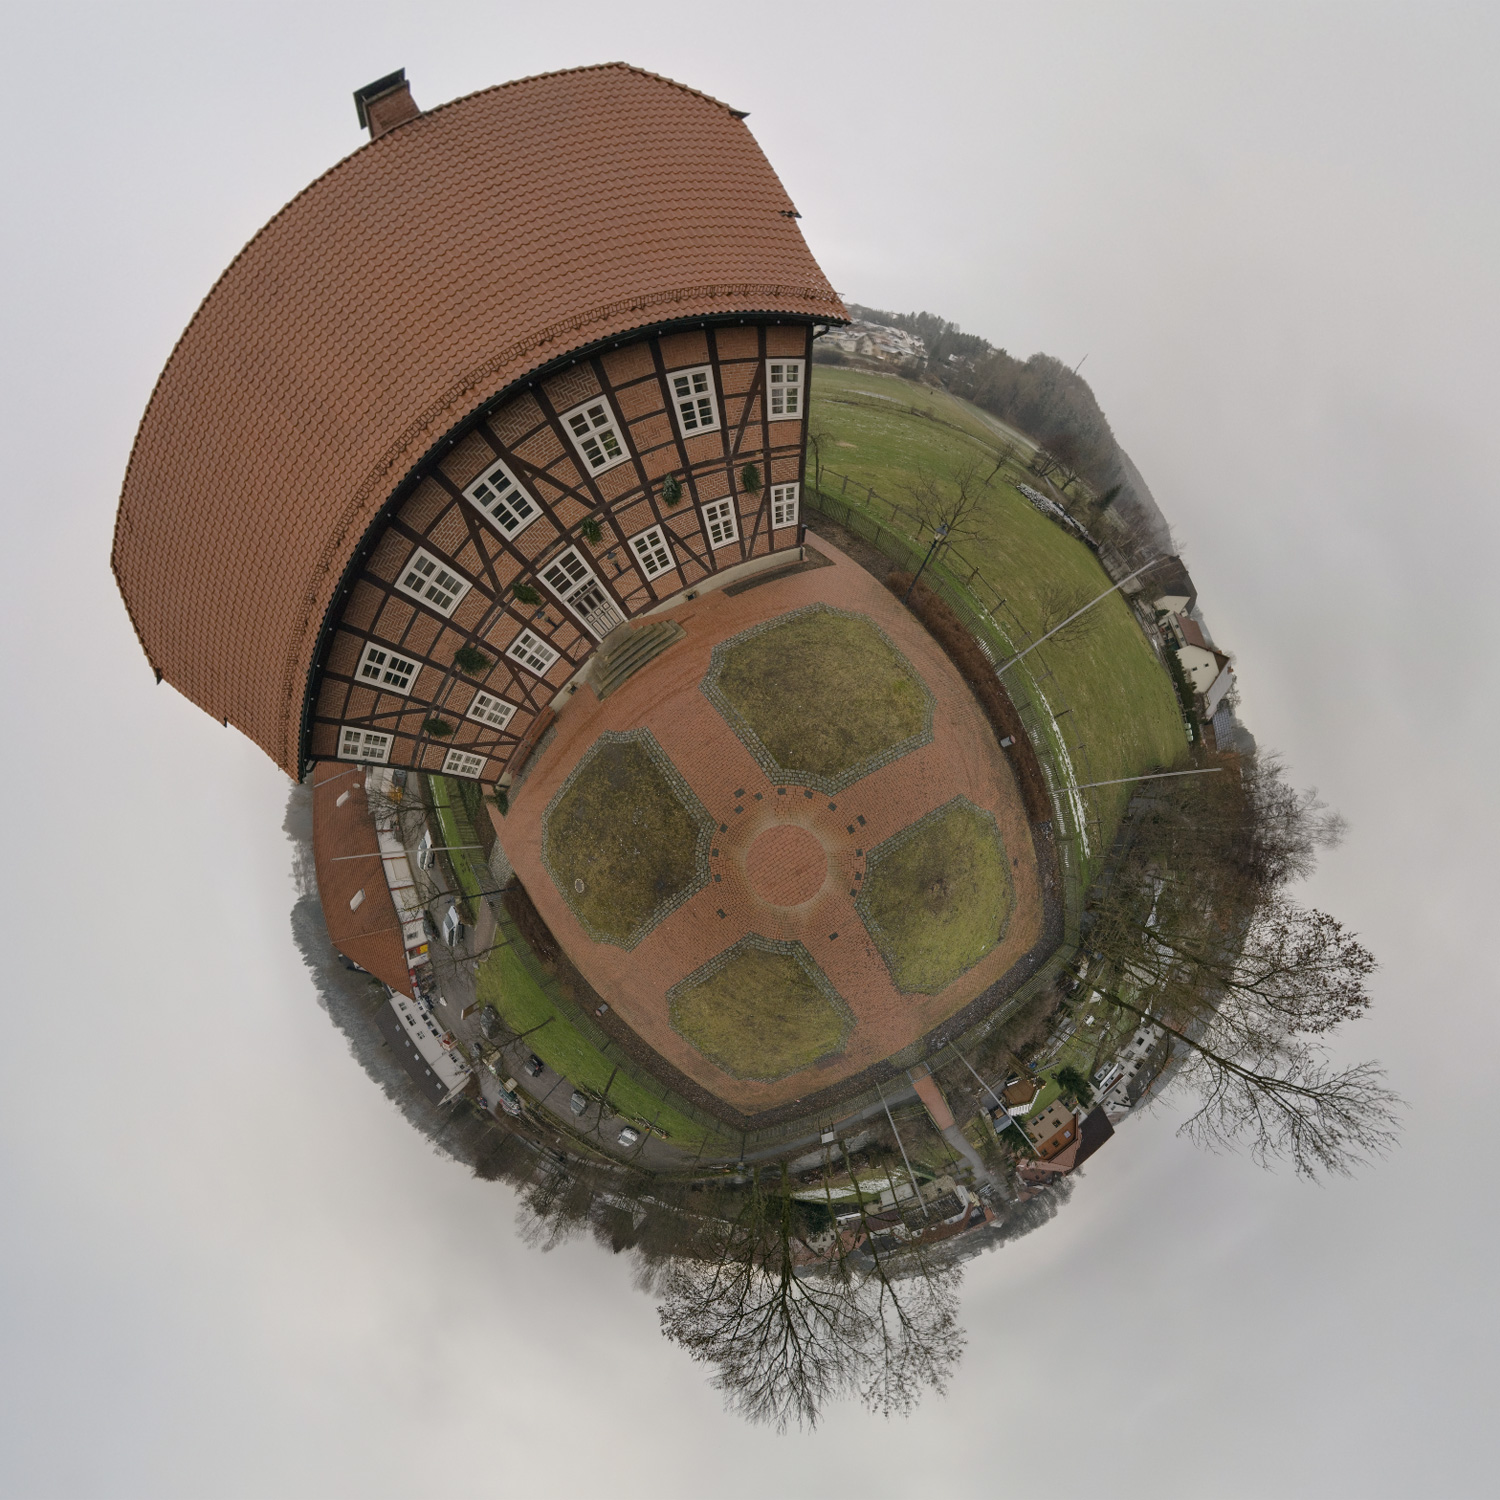 Panorama 063 - Little Planet